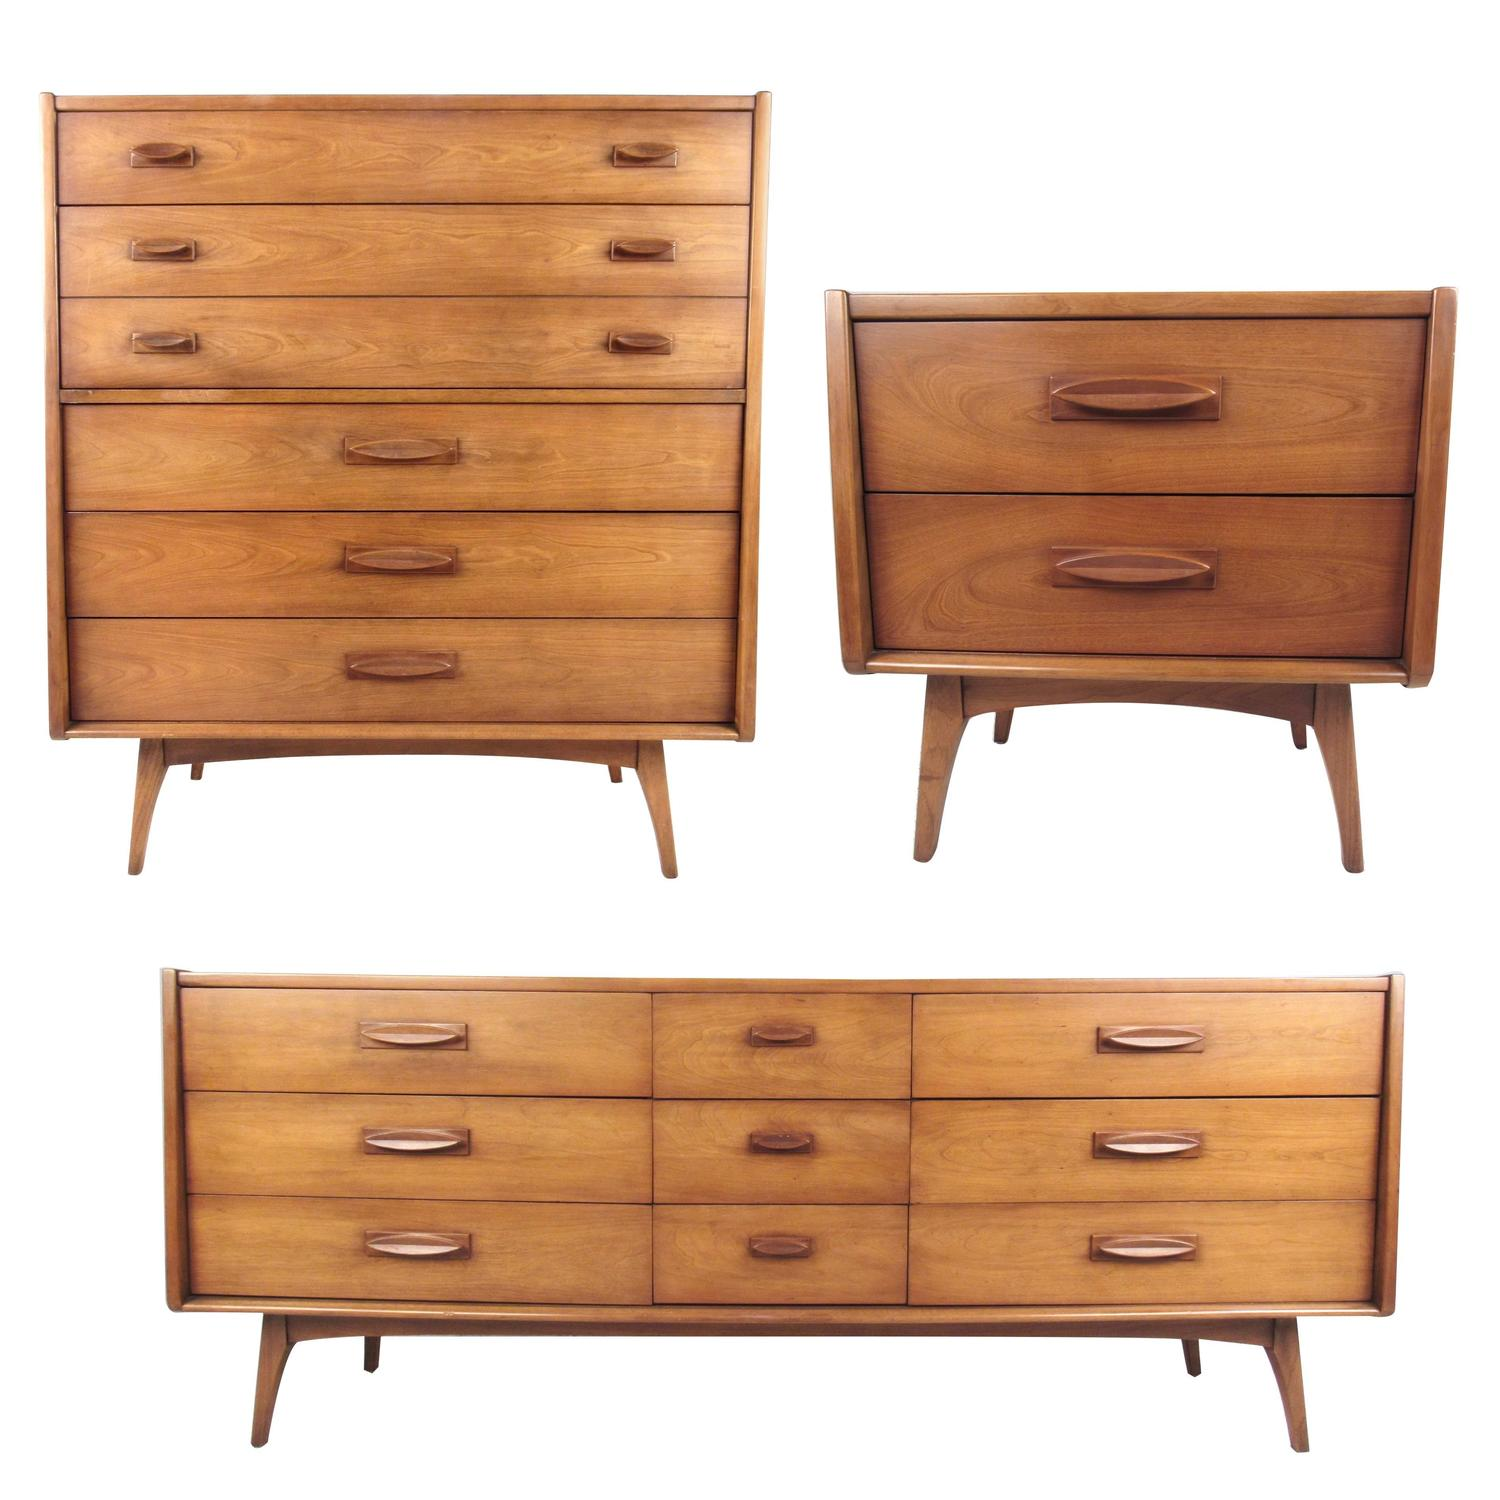 Mid century modern three piece bedroom set for sale at 1stdibs for 3 bedroom set